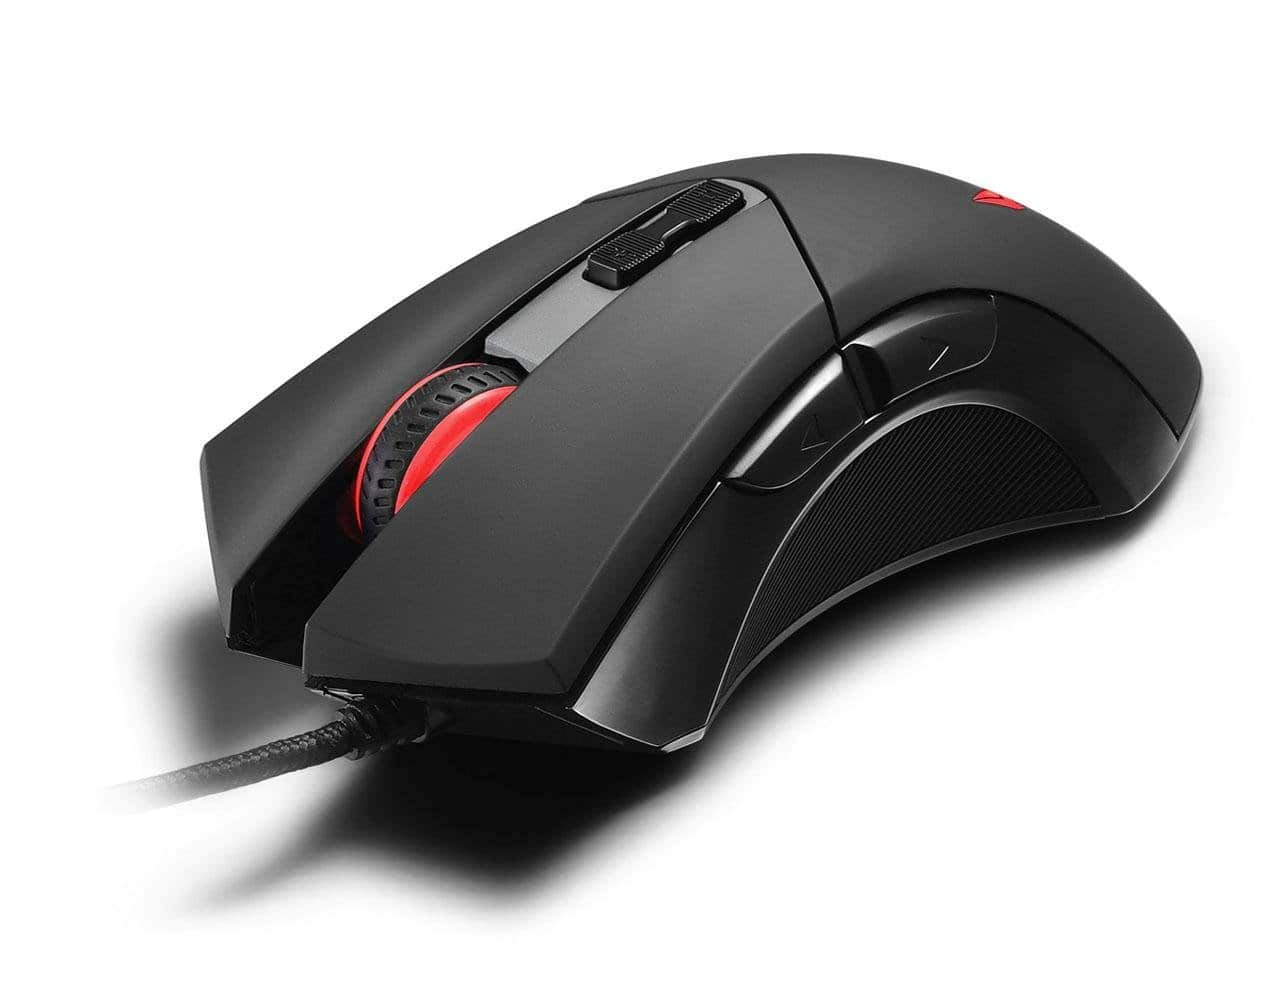 Etekcity Scroll X1 2400 DPI Gaming Mouse $12